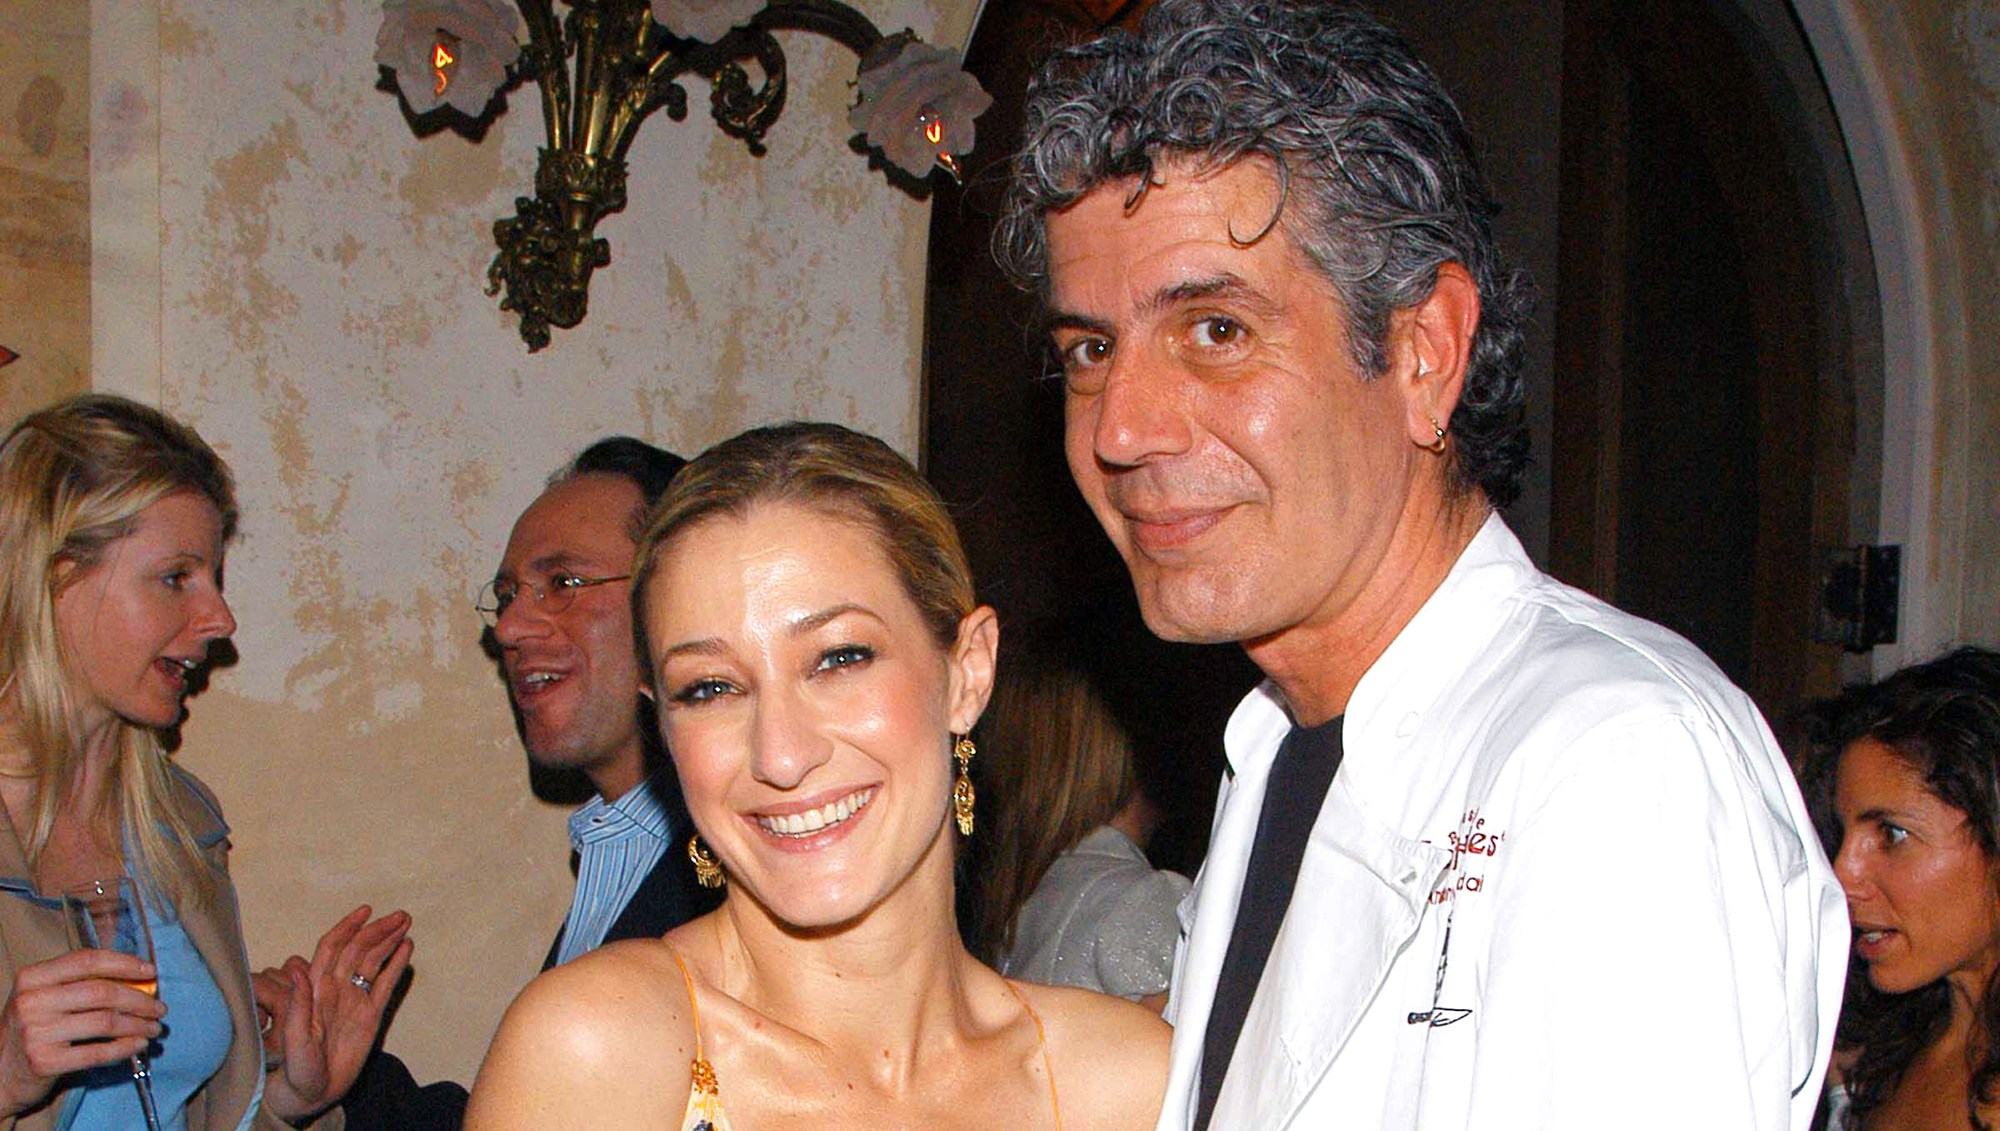 Paula Froelich and Anthony Bourdain